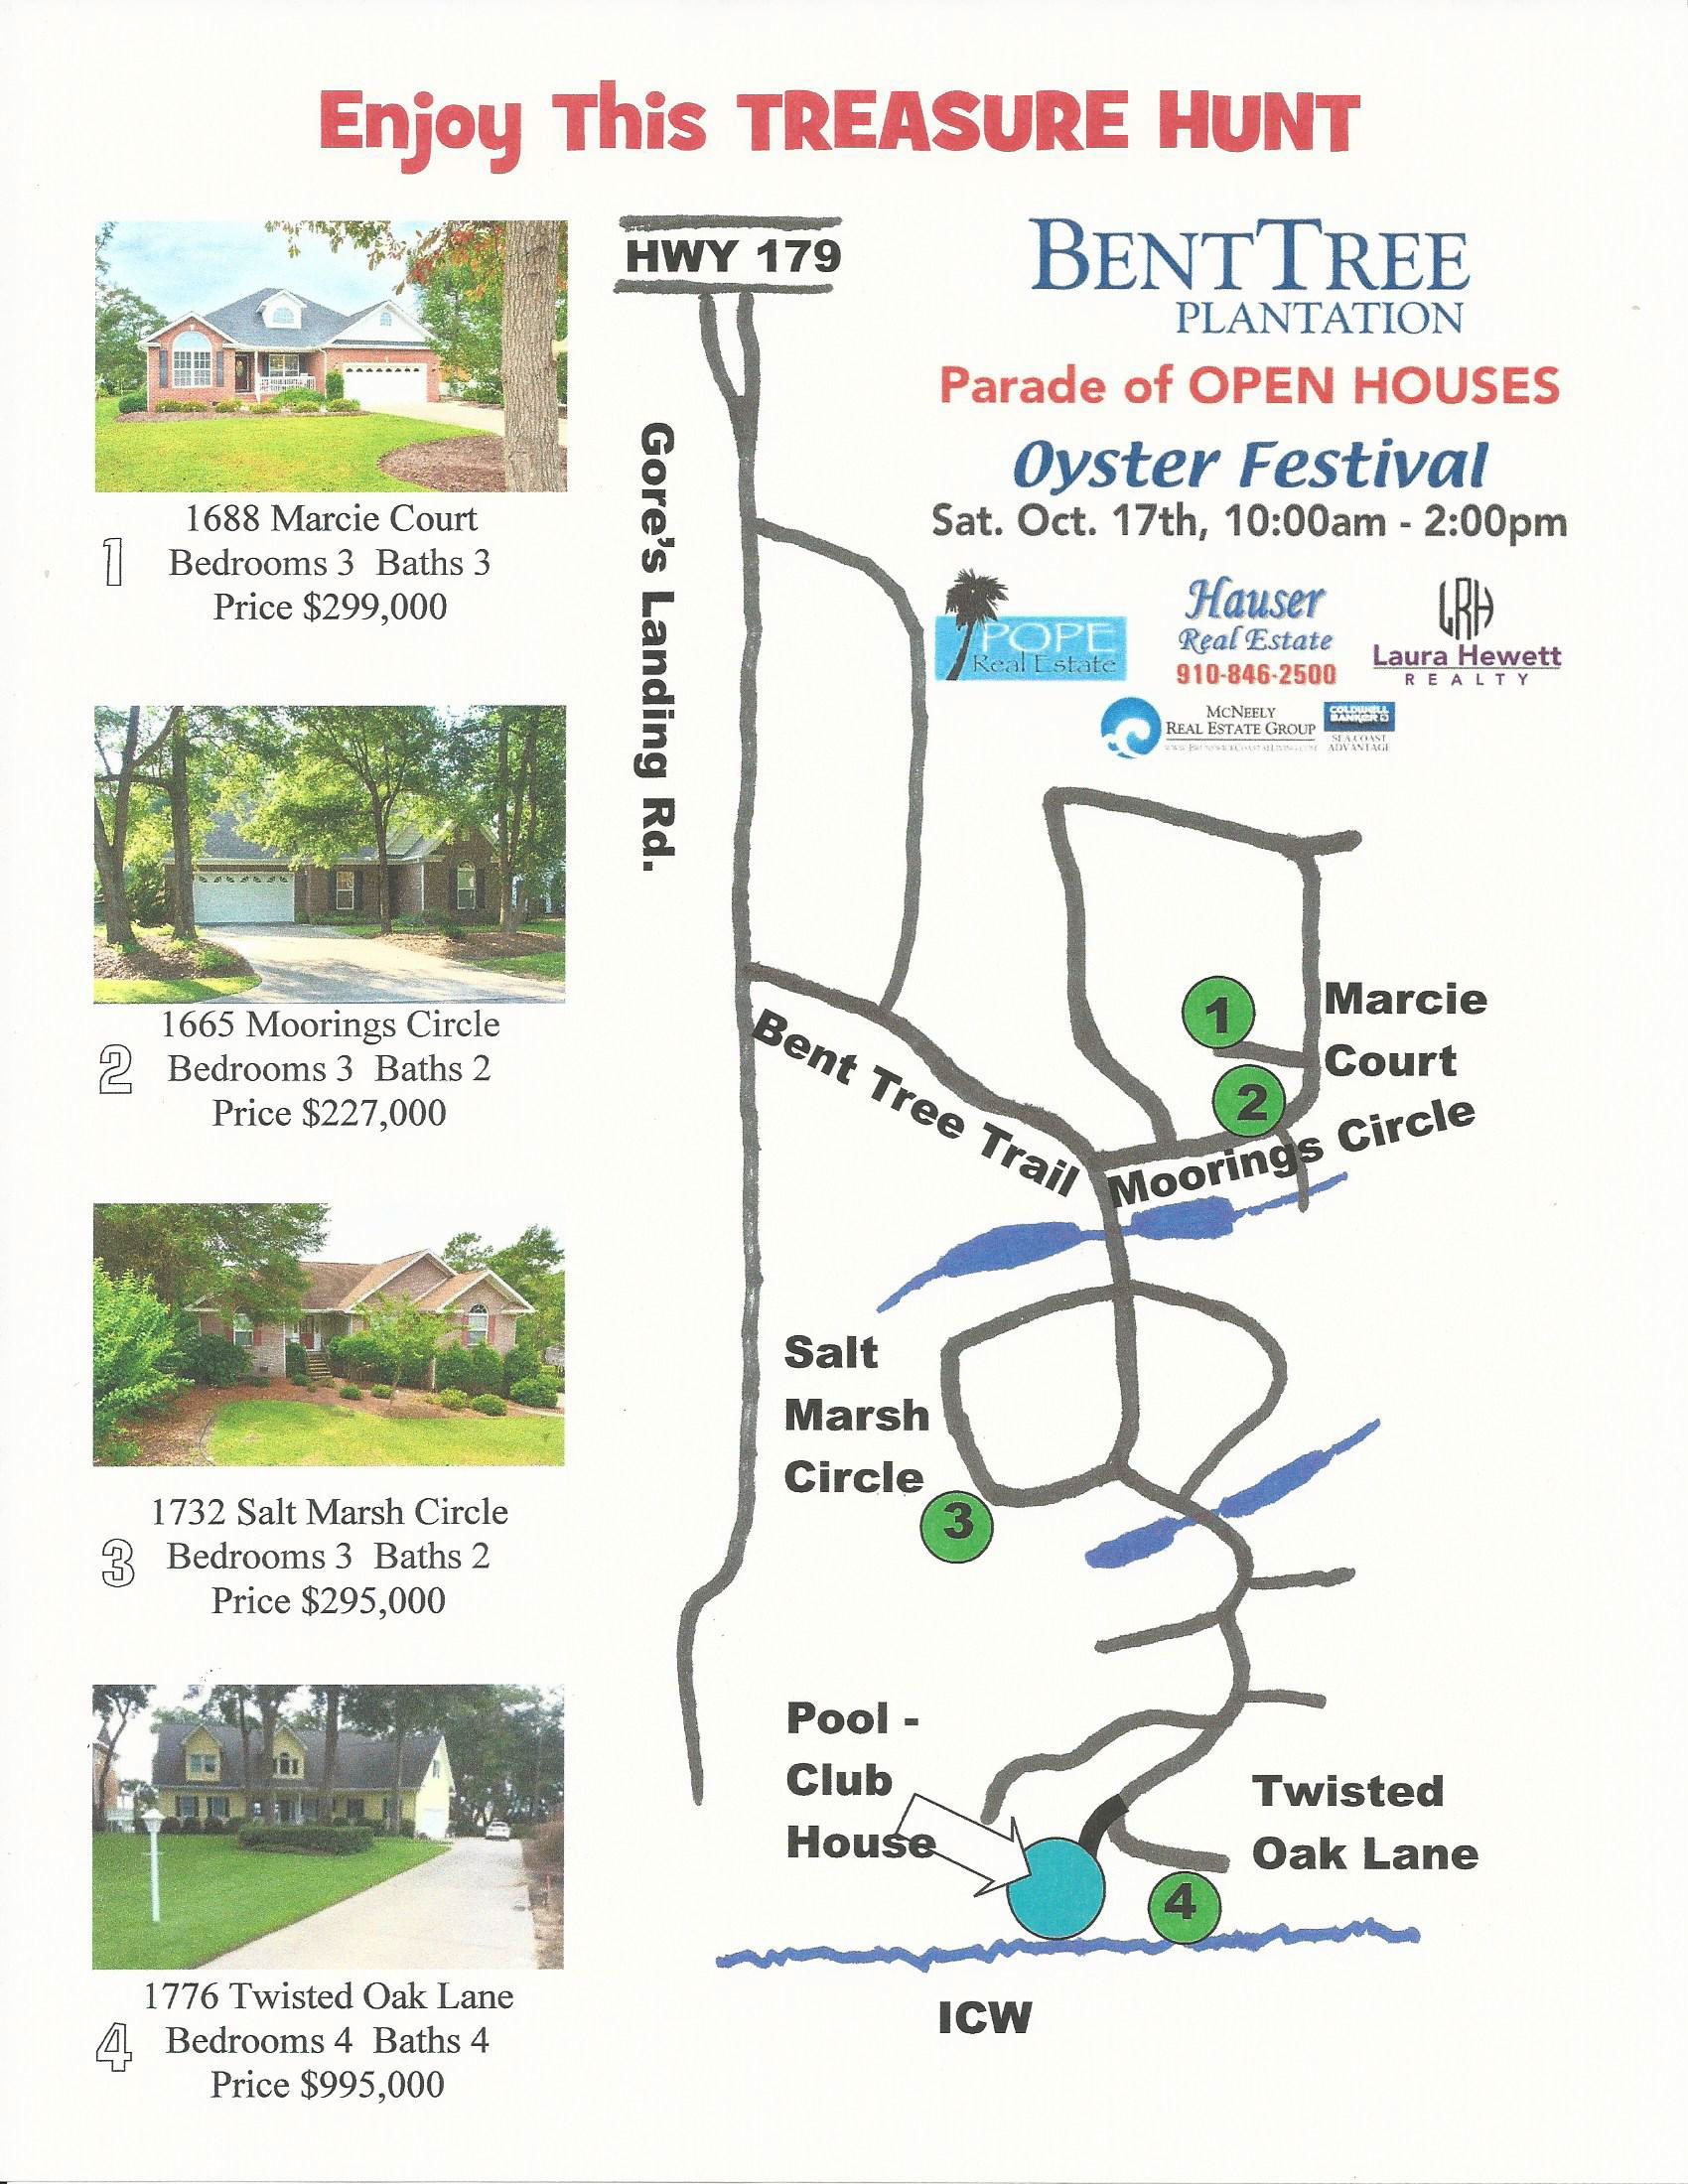 Benttree plantation open house trail today ocean isle for Nc surf fishing calendar